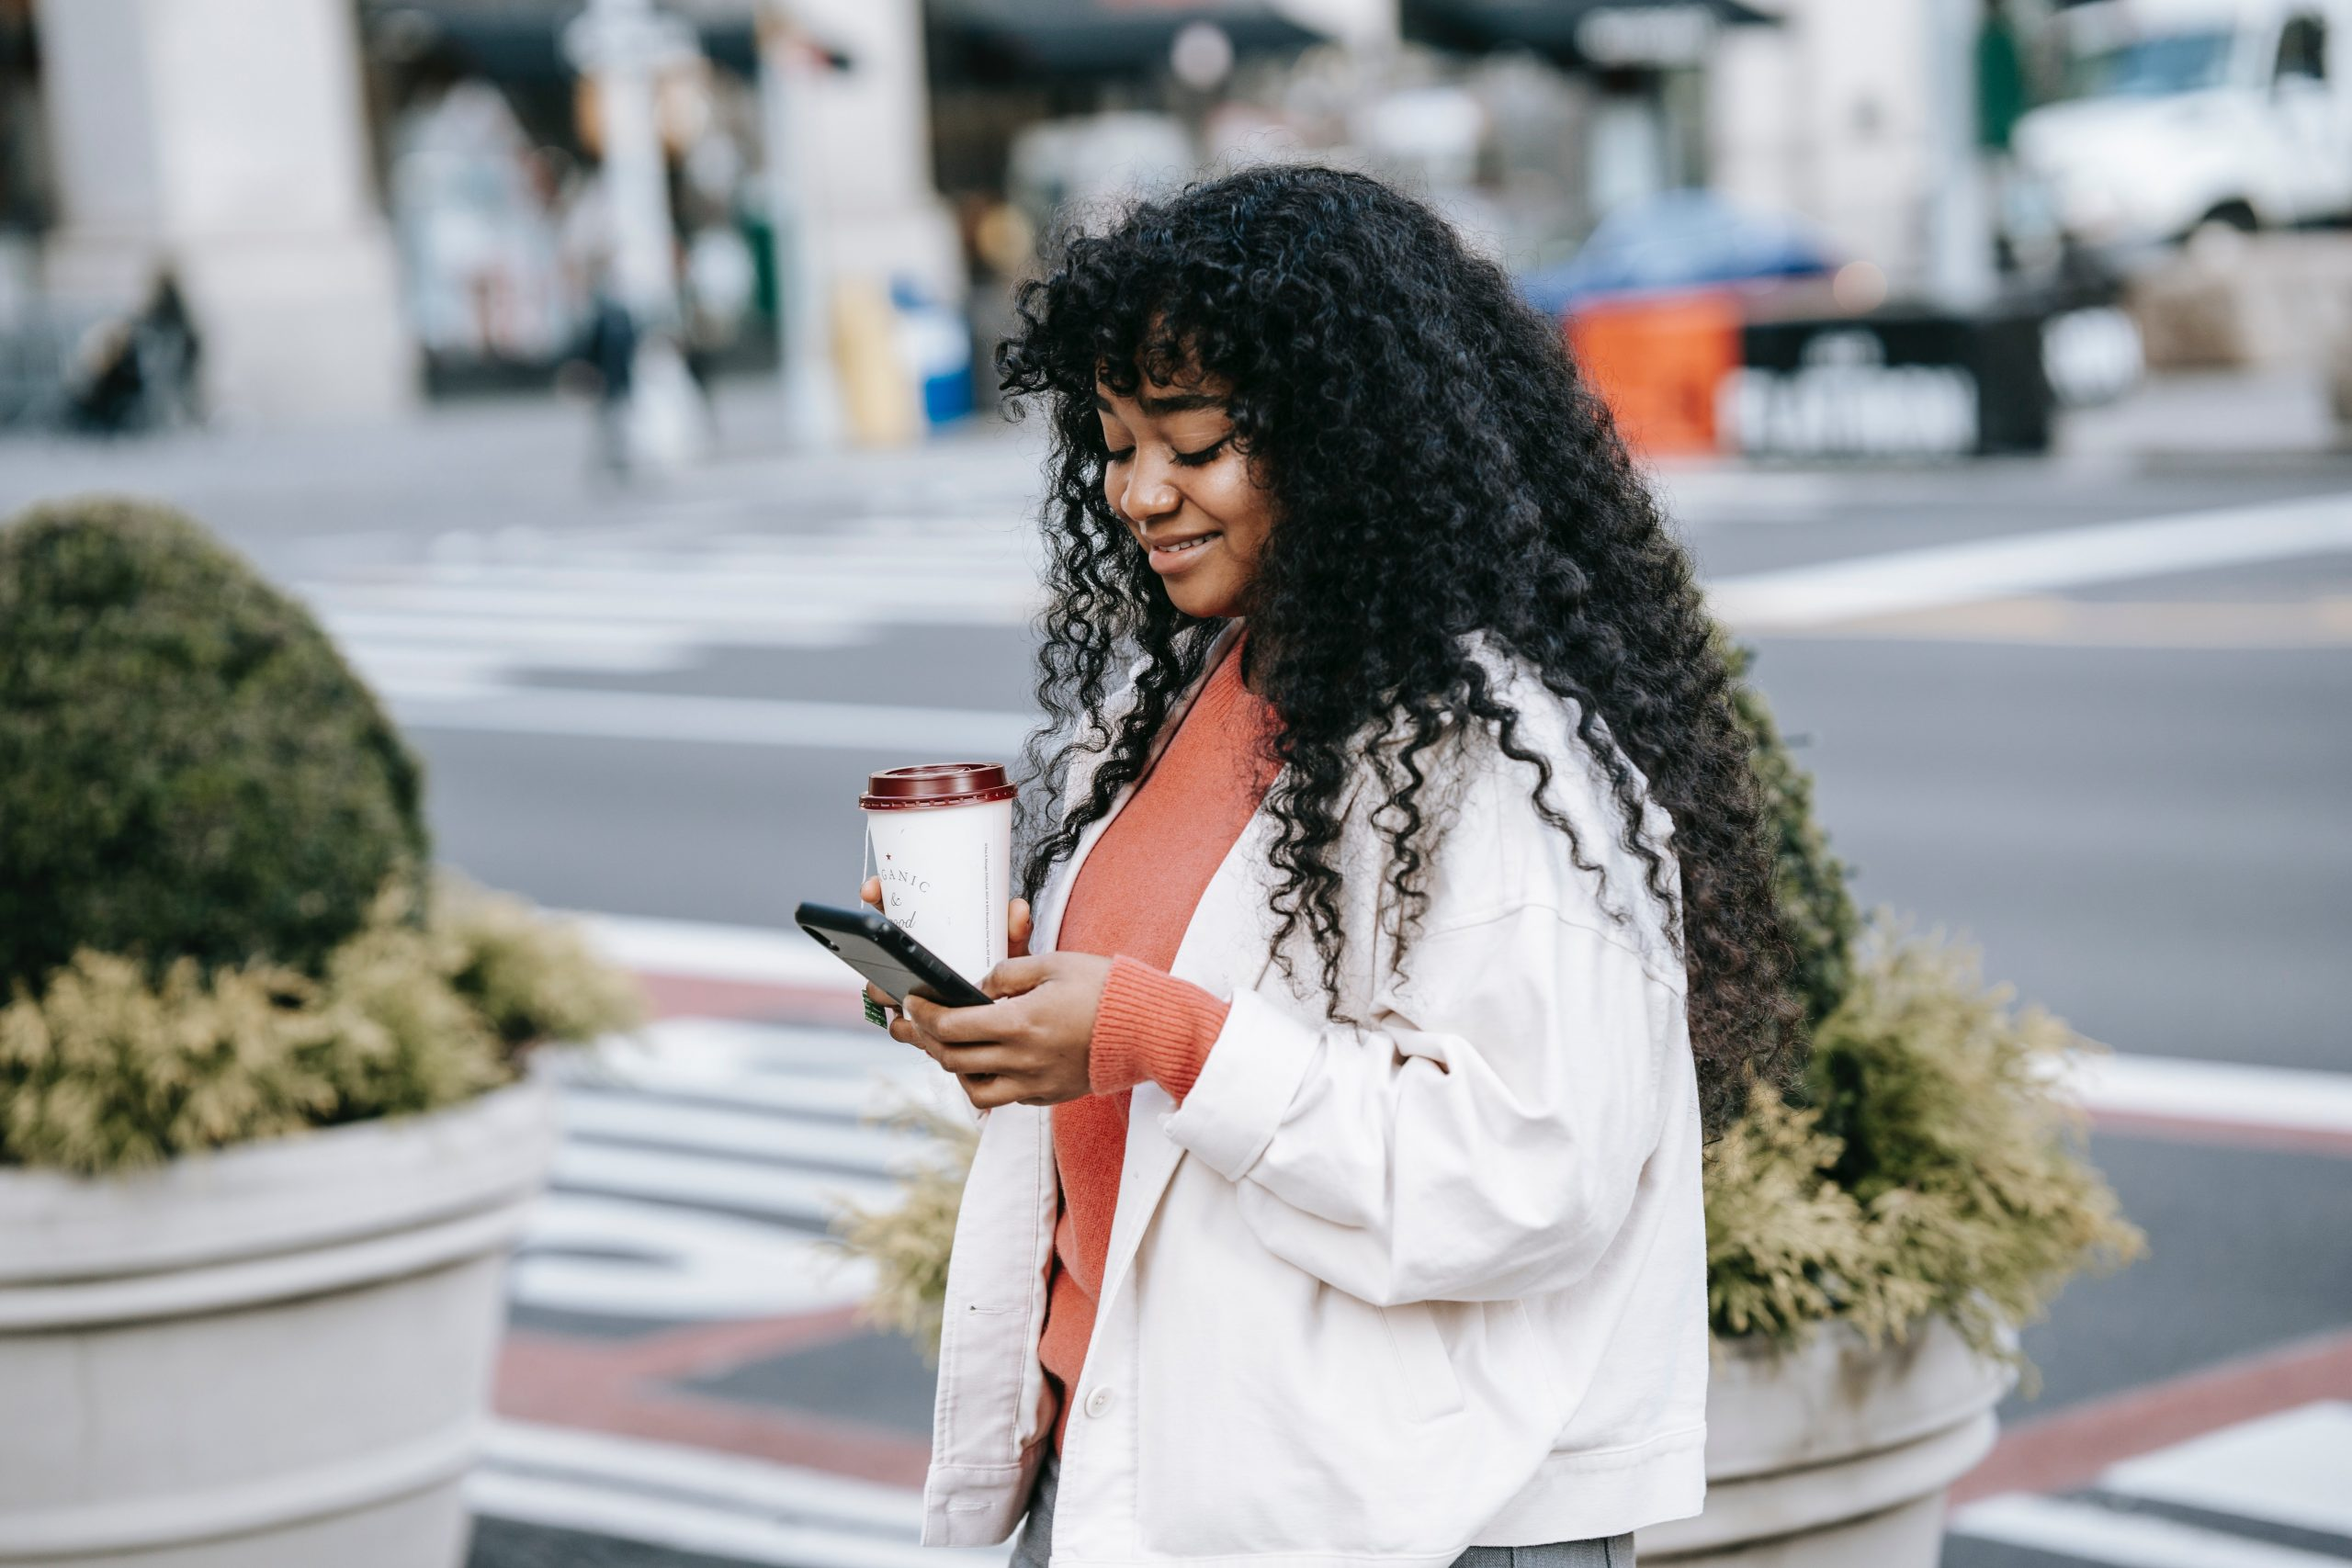 Girl walking on road holding a coffee and mobile phone looking at church mobile app